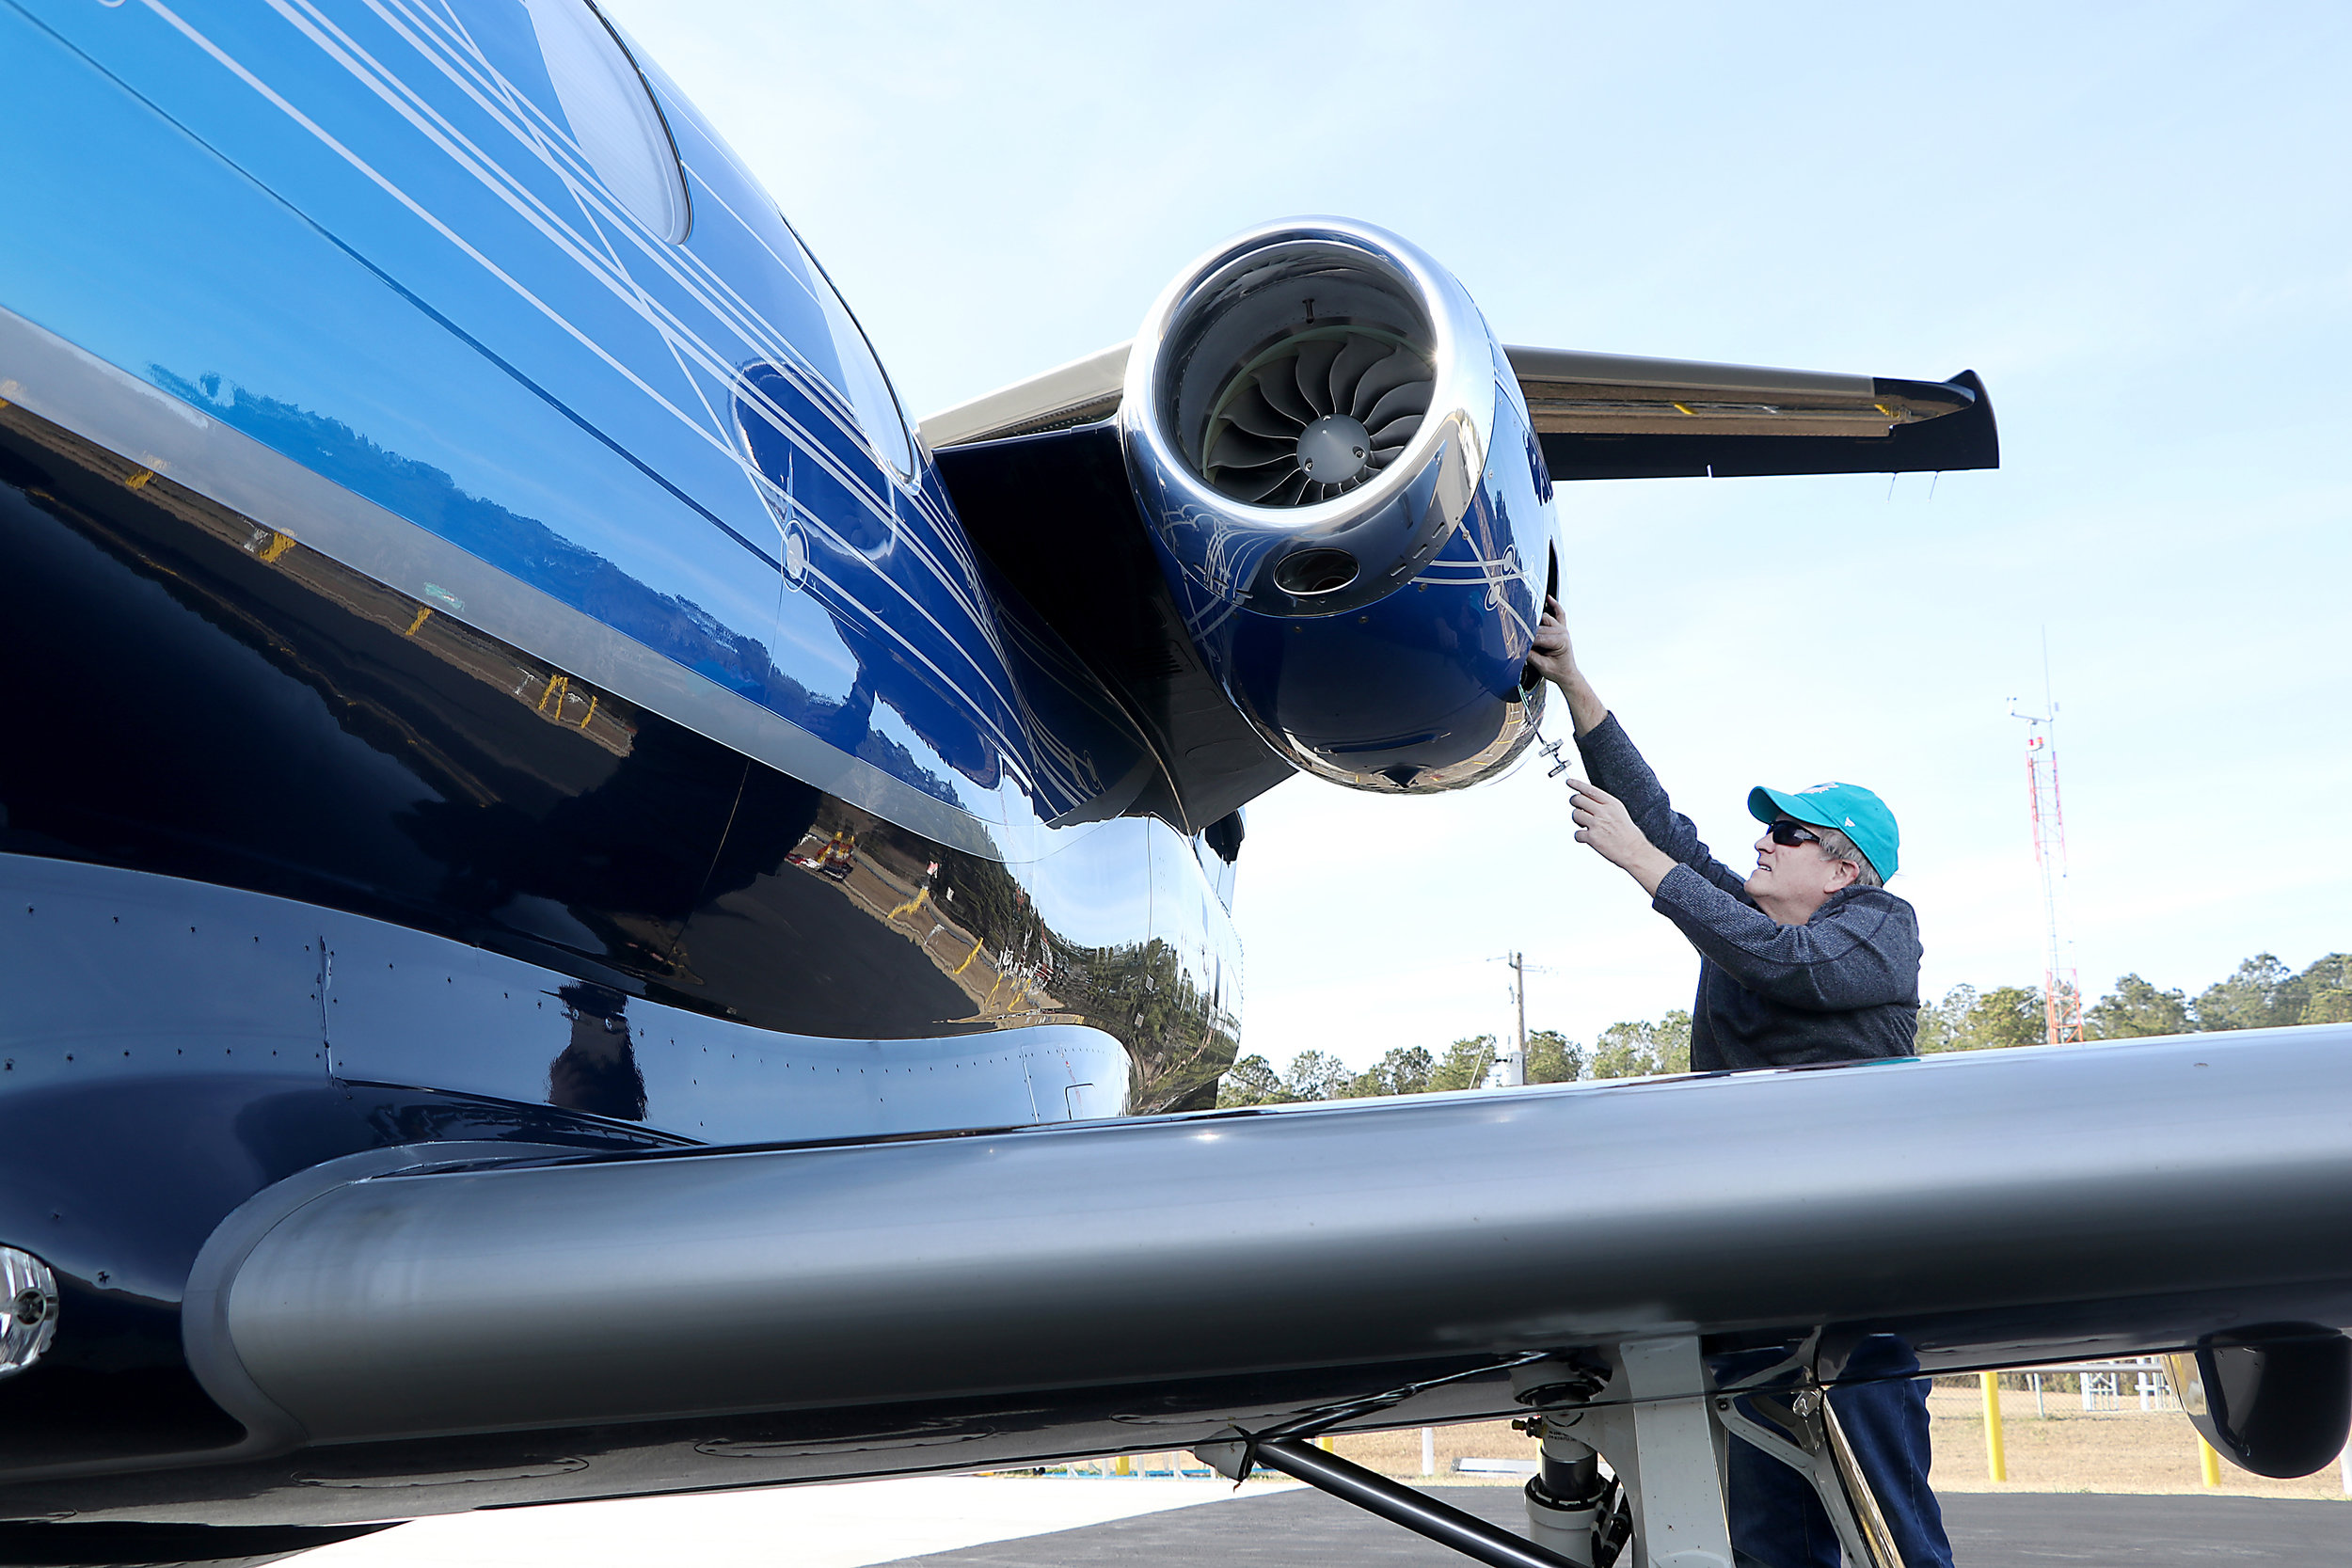 Gary Strausser of Pennsylvania checks his Embraer jet at the Columbus County Municipal Airport